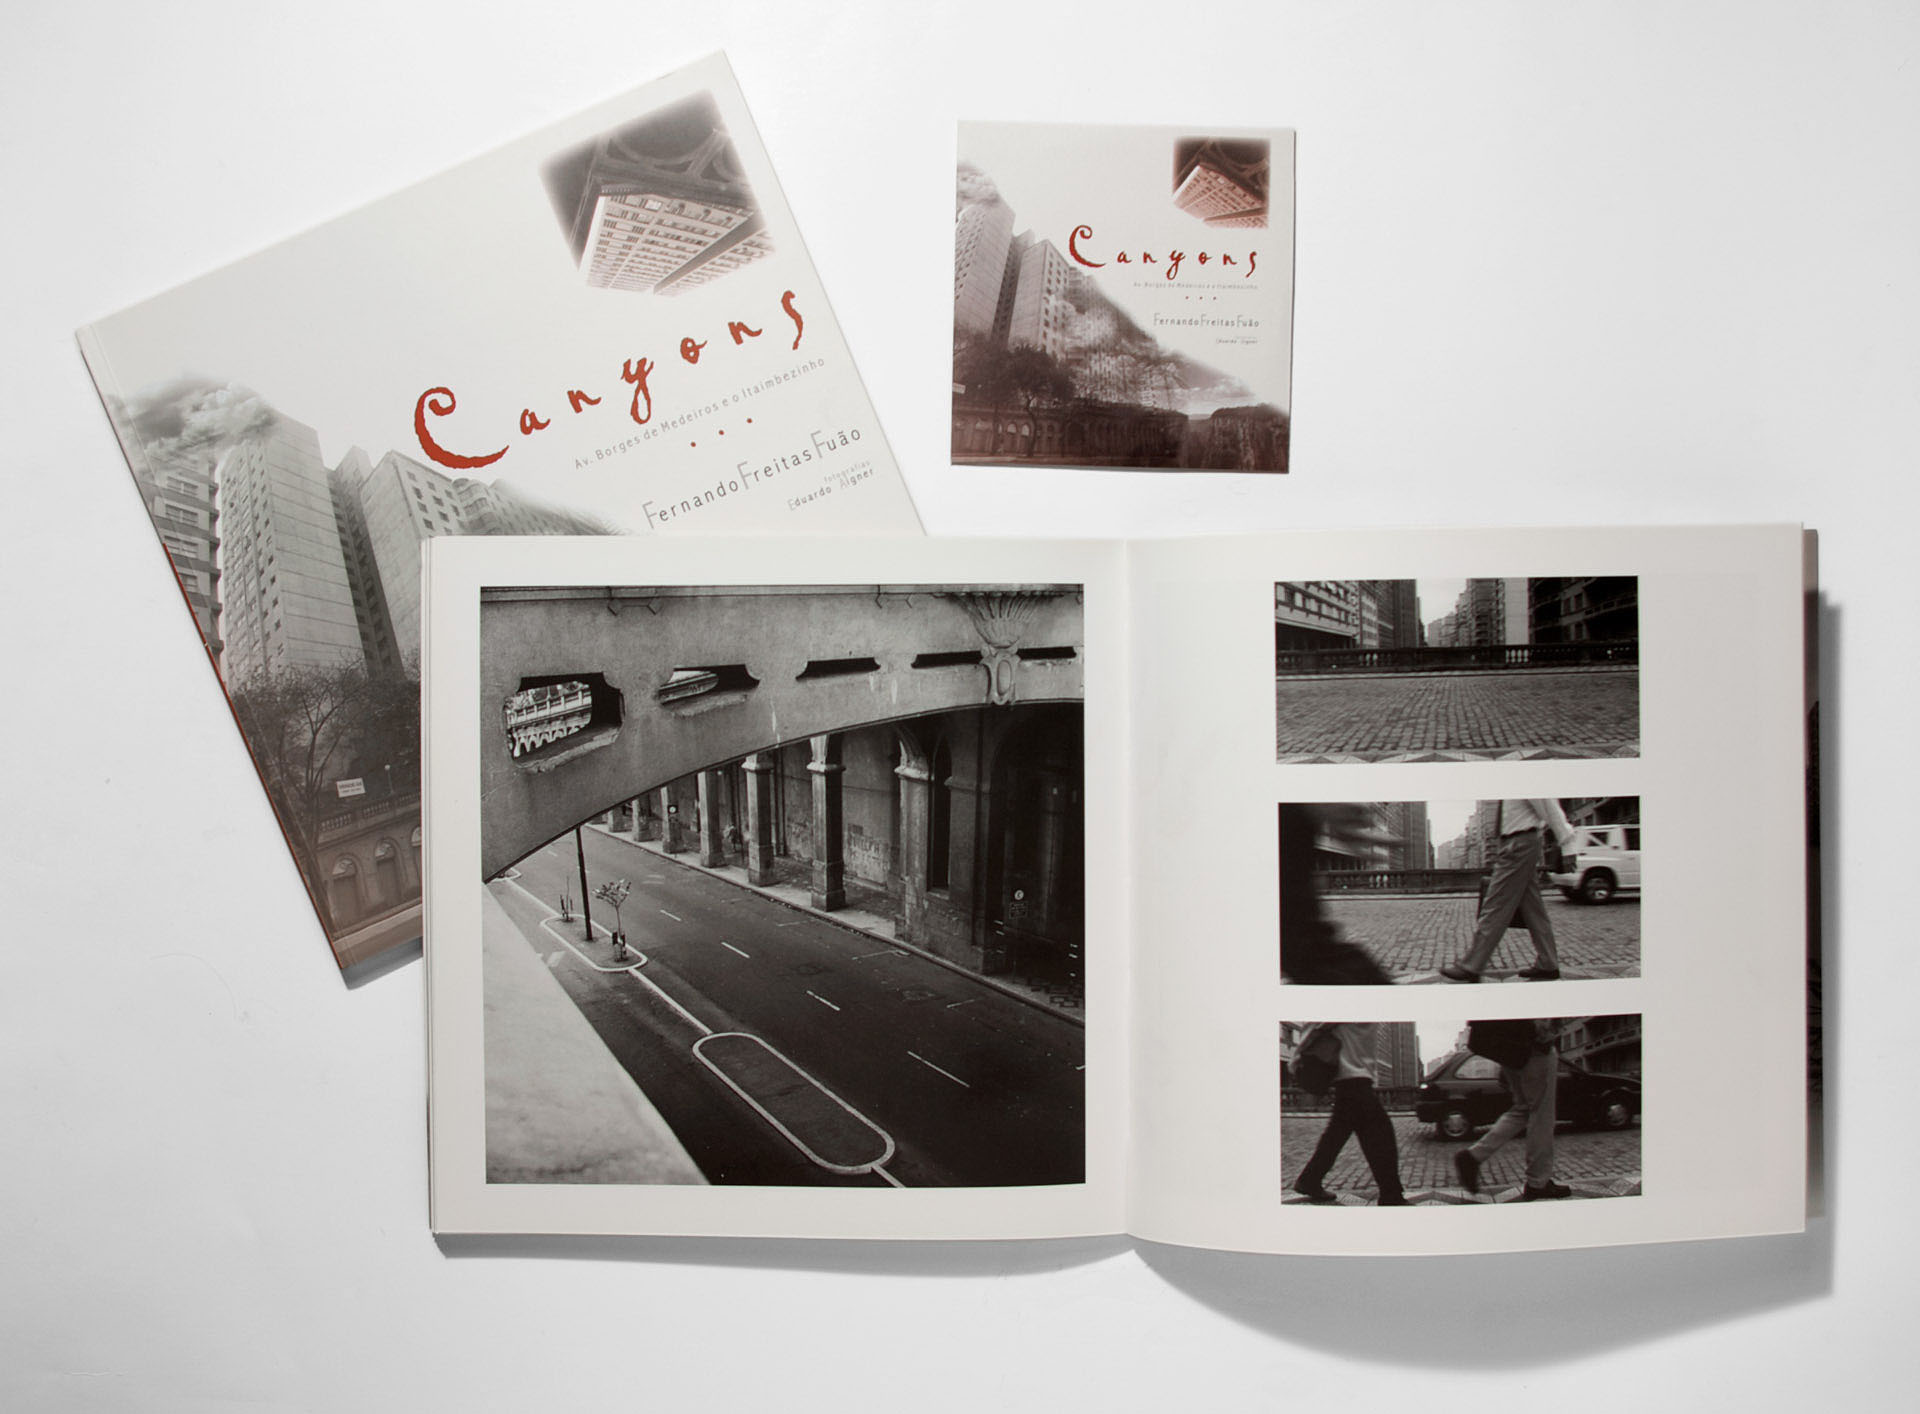 Canyons_book_006